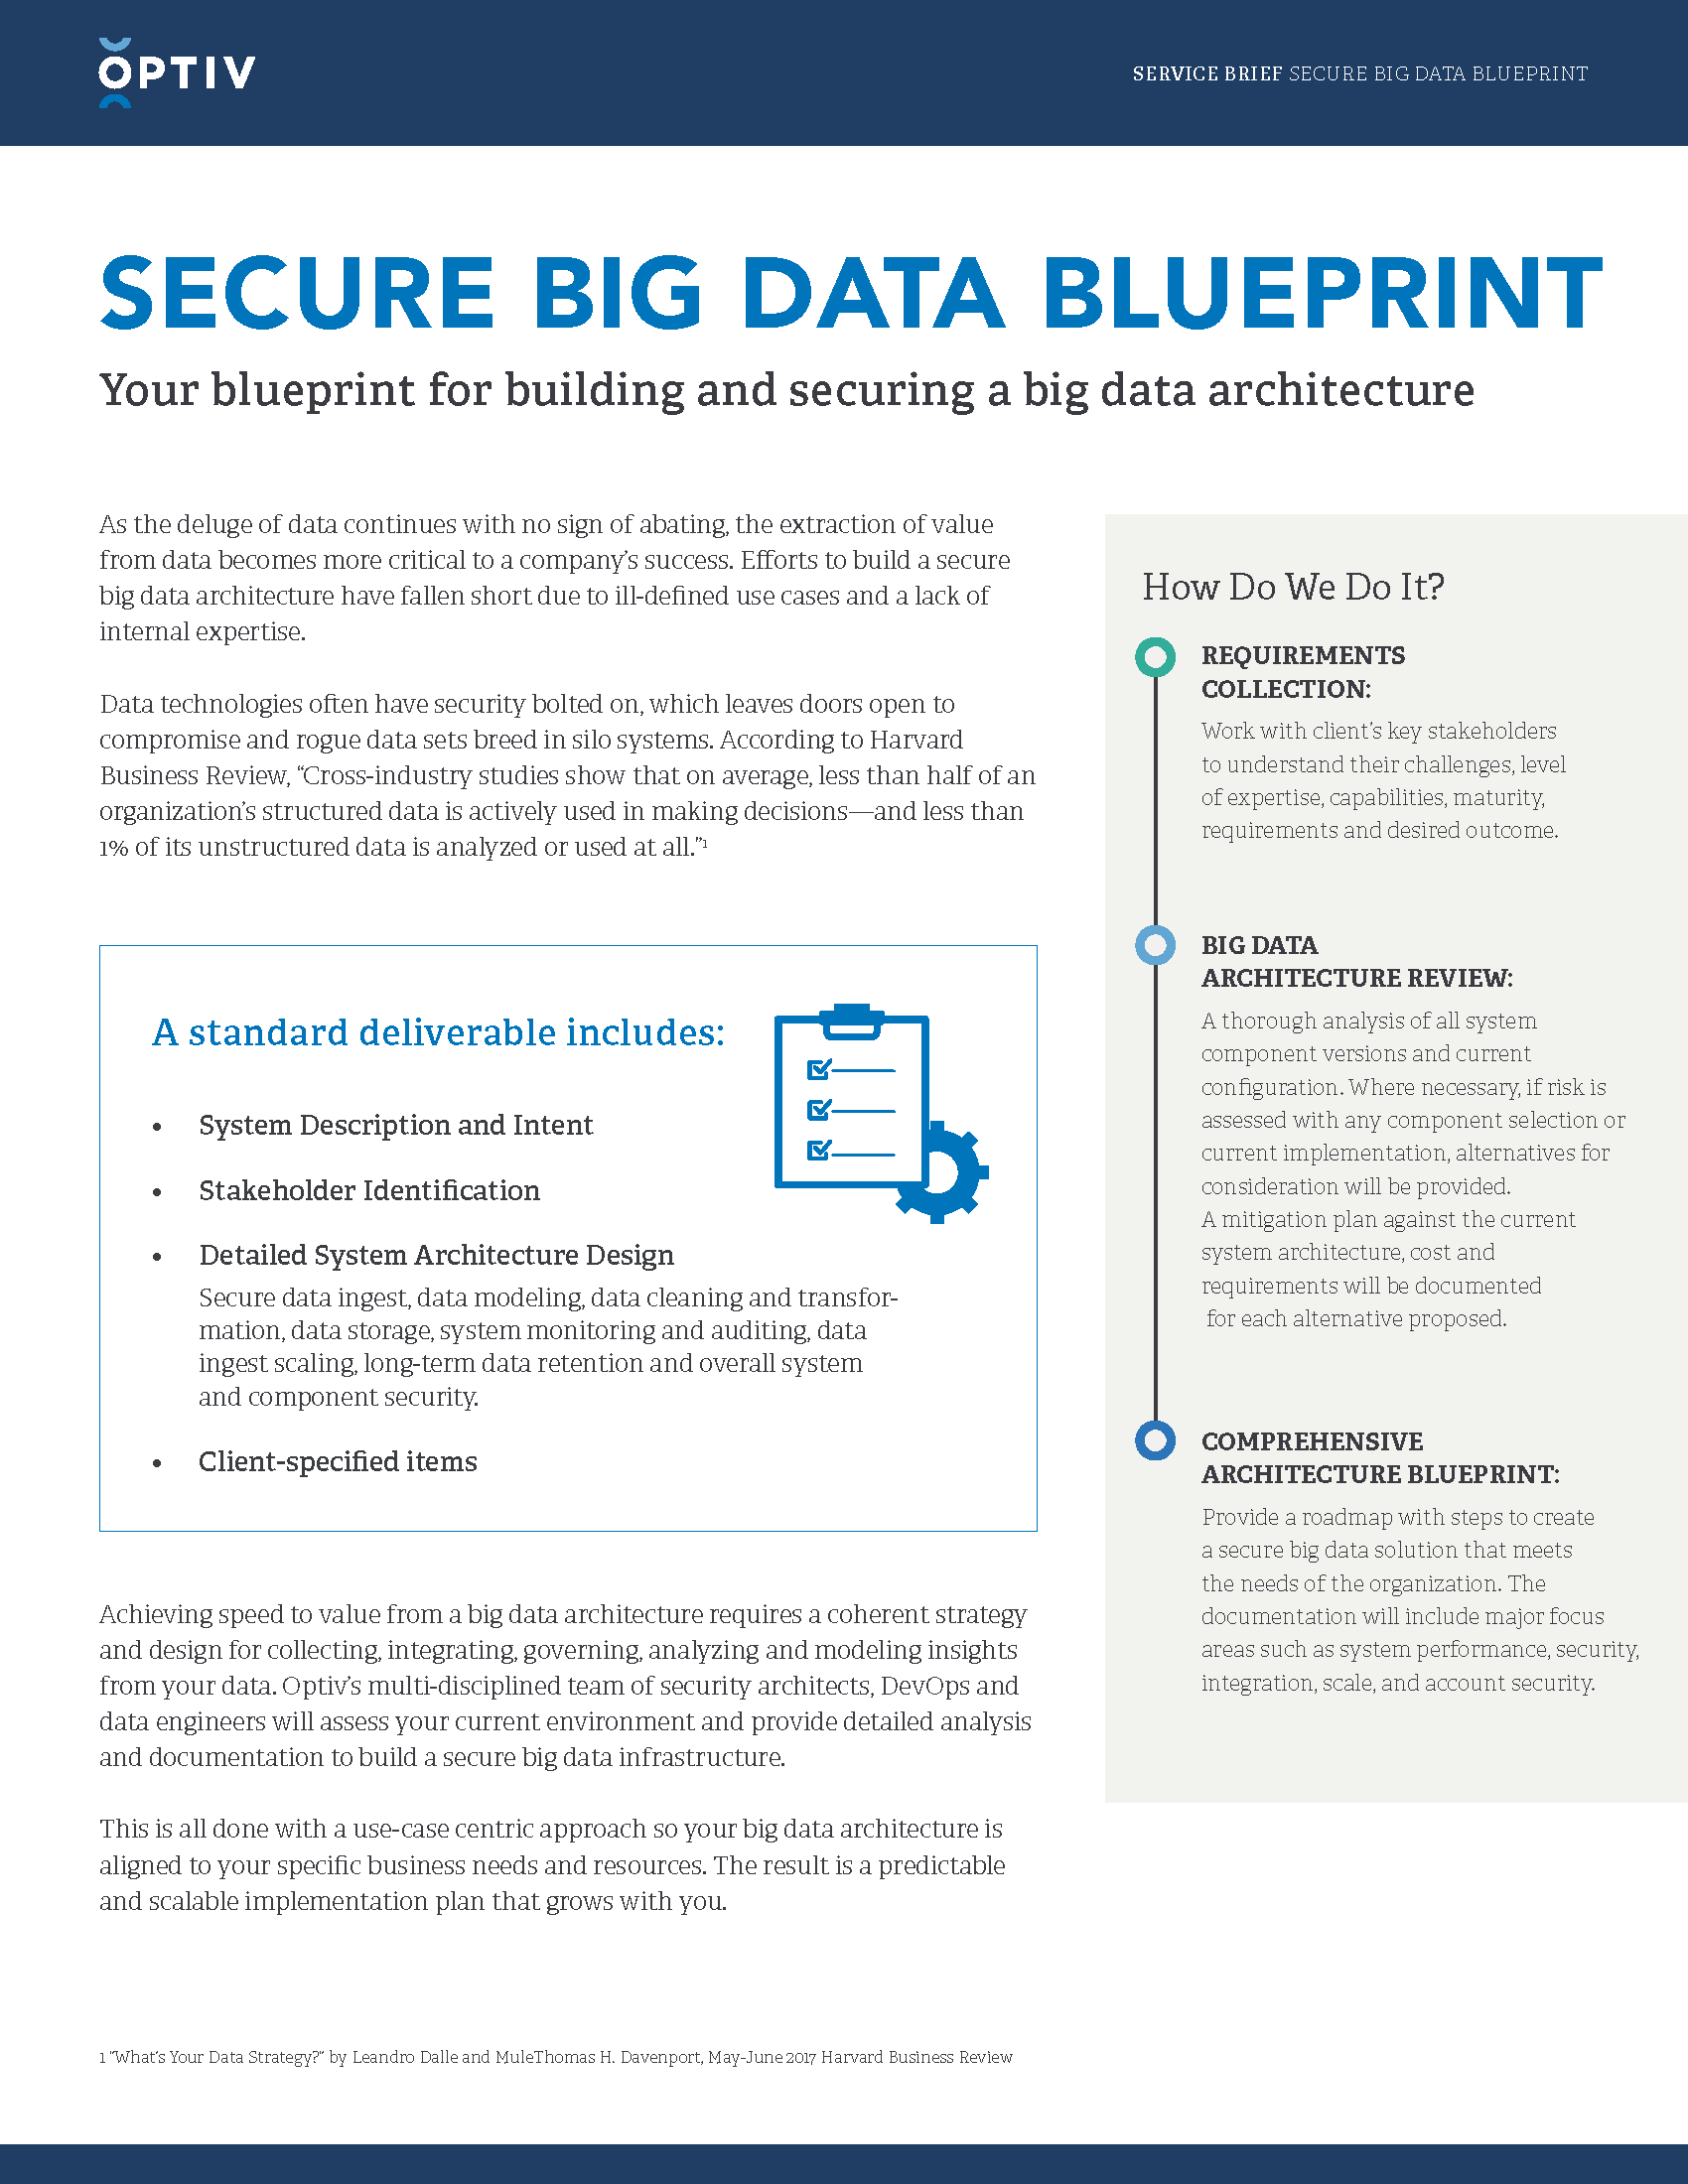 Secure Big Data Blueprint